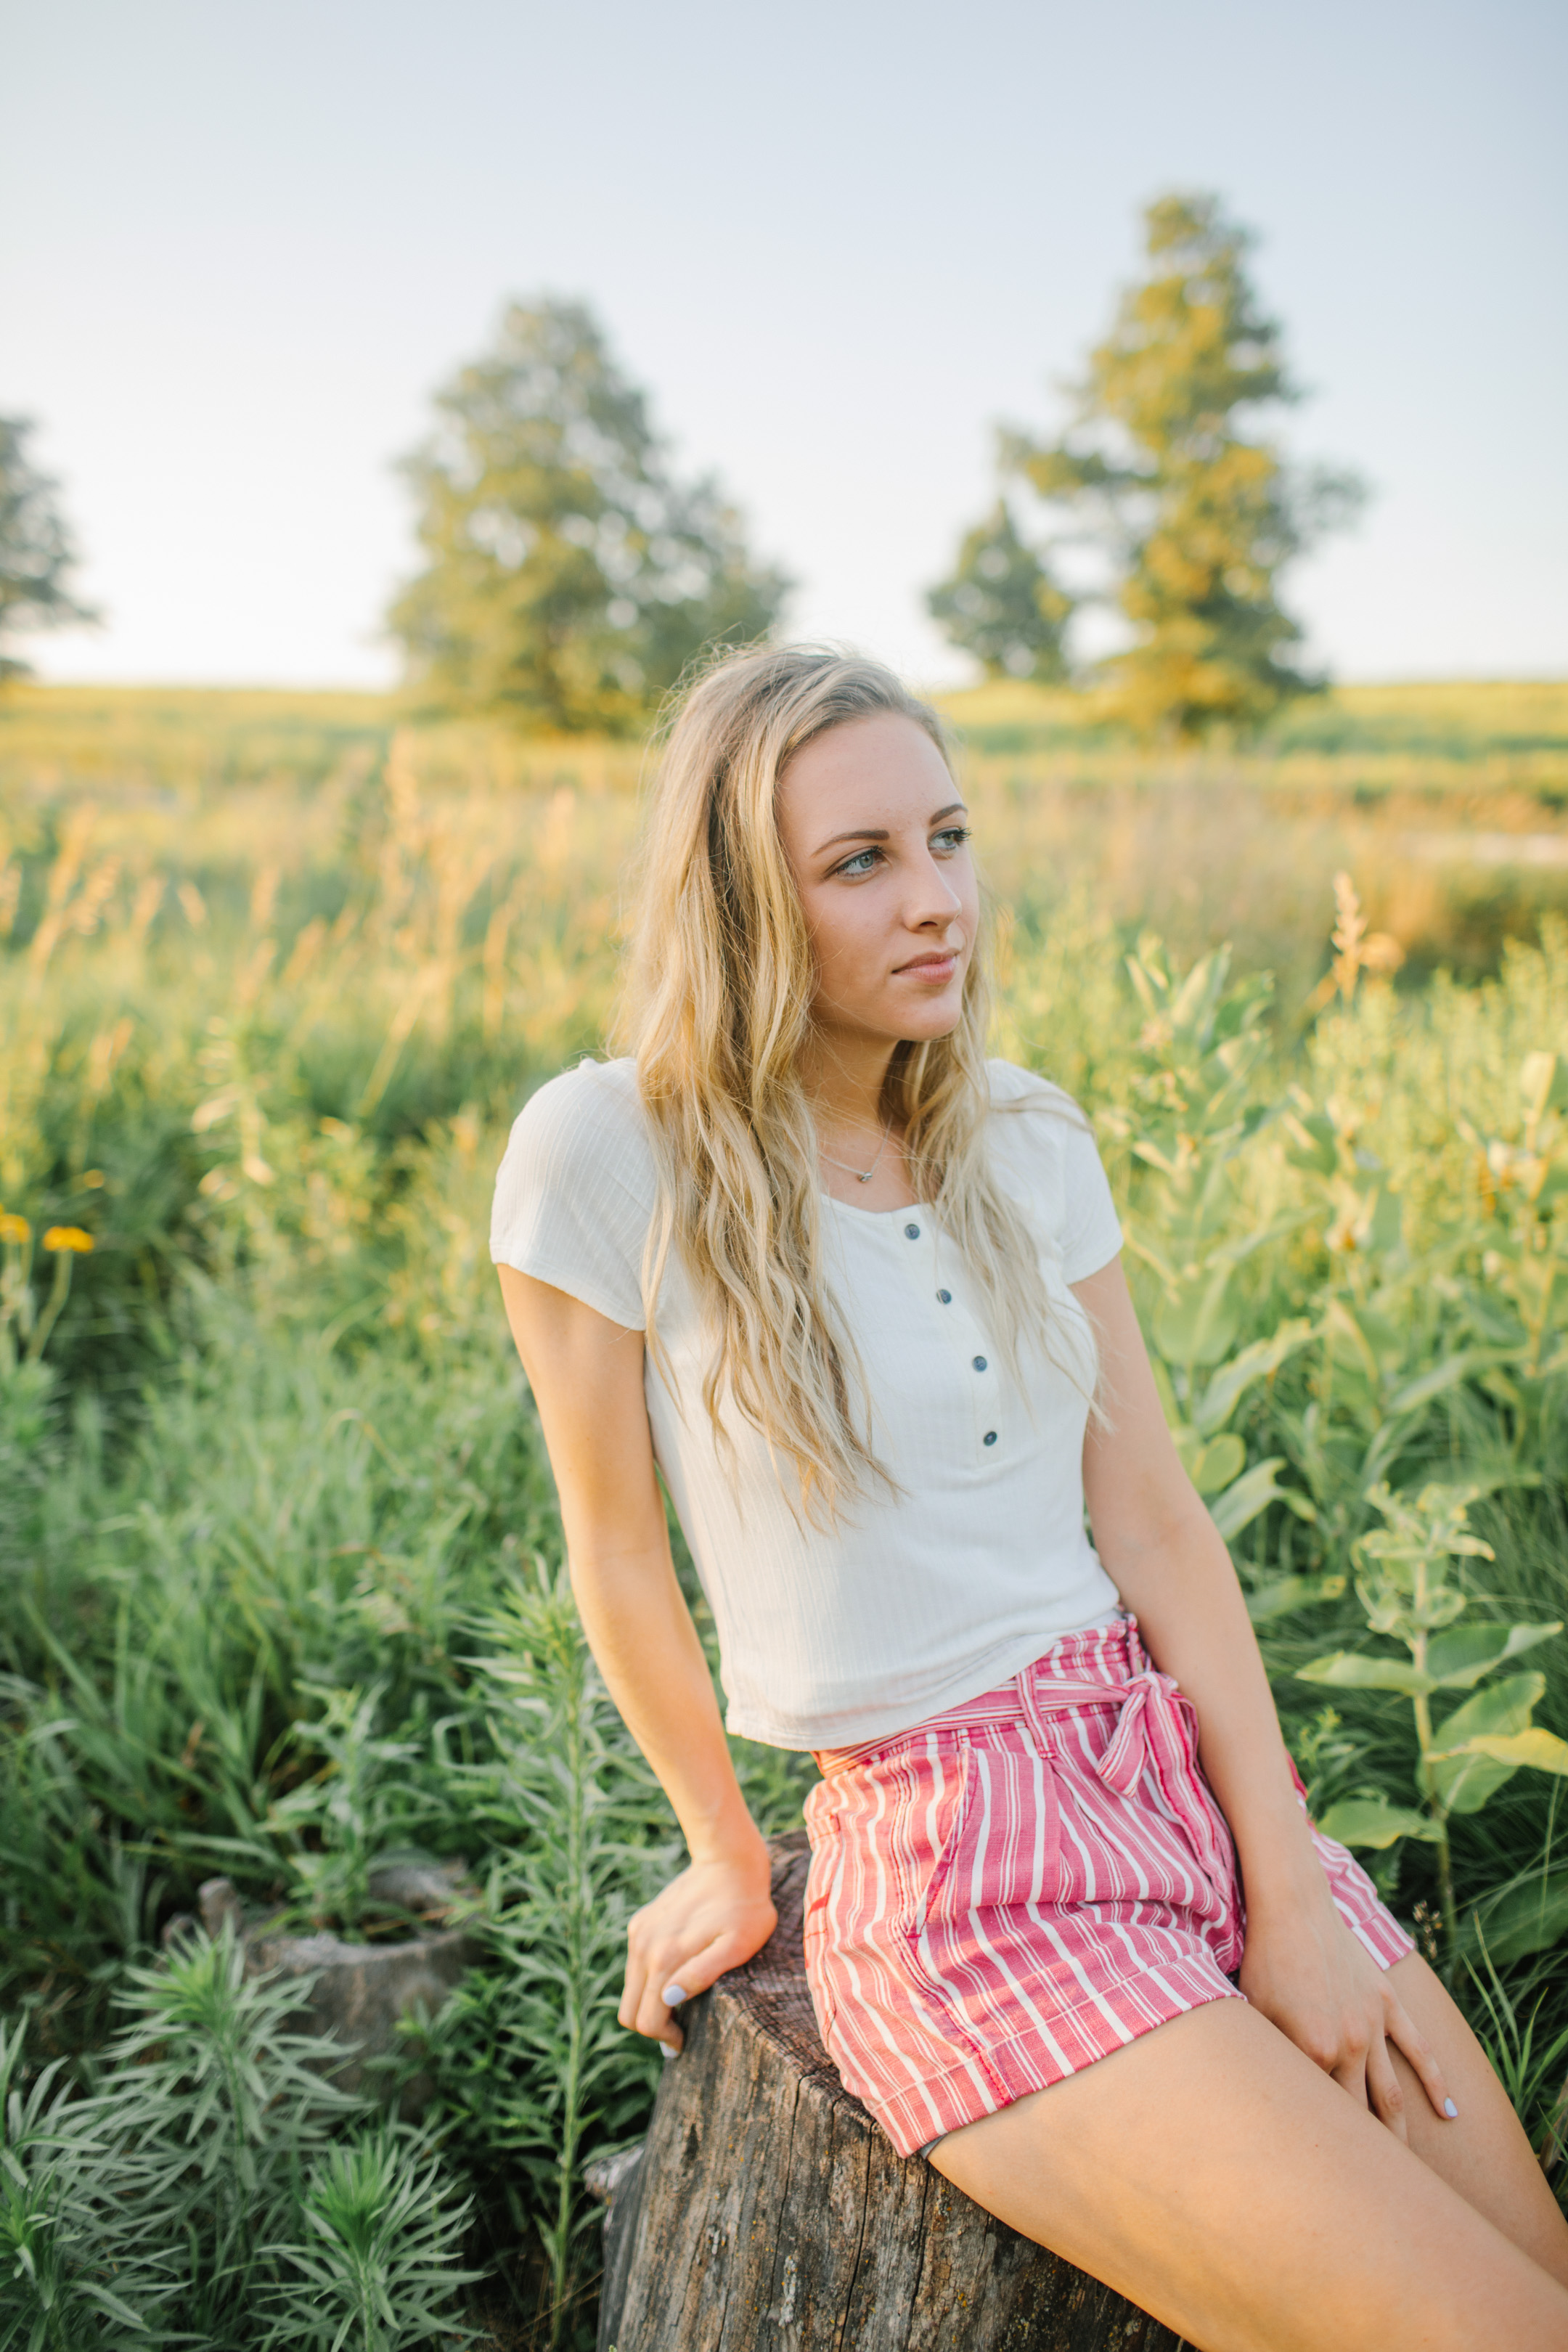 Des Moines  ,   Iowa   - Amelia Renee   Photography   and   Portraits   for the Modern High School   Senior